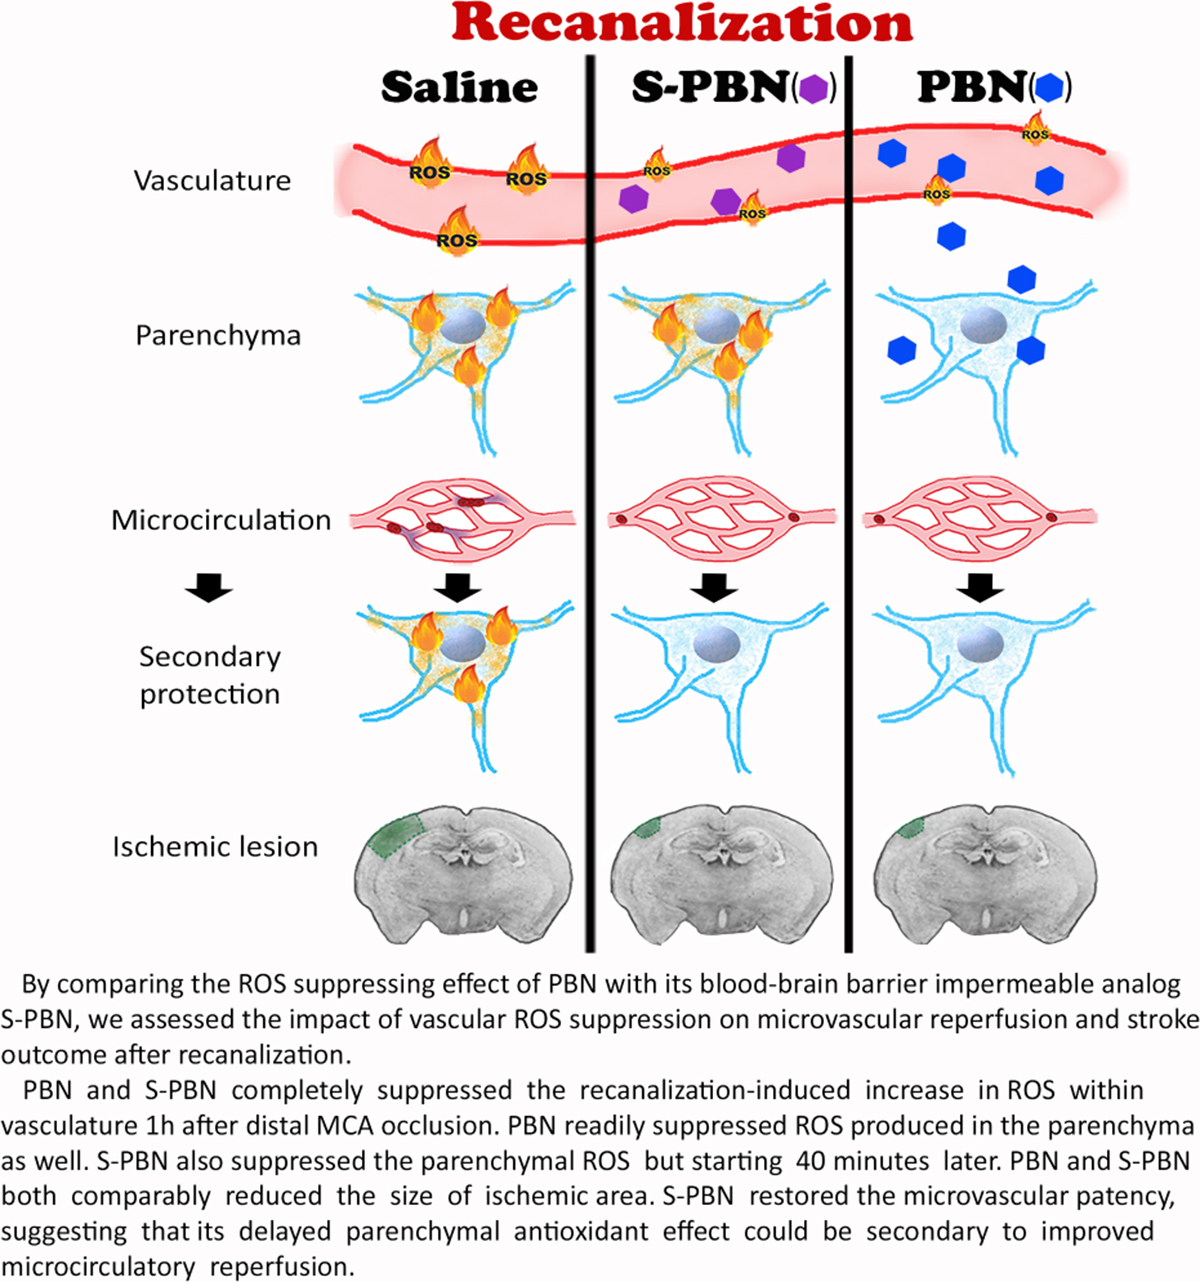 Improving Microcirculatory Reperfusion Reduces Parenchymal